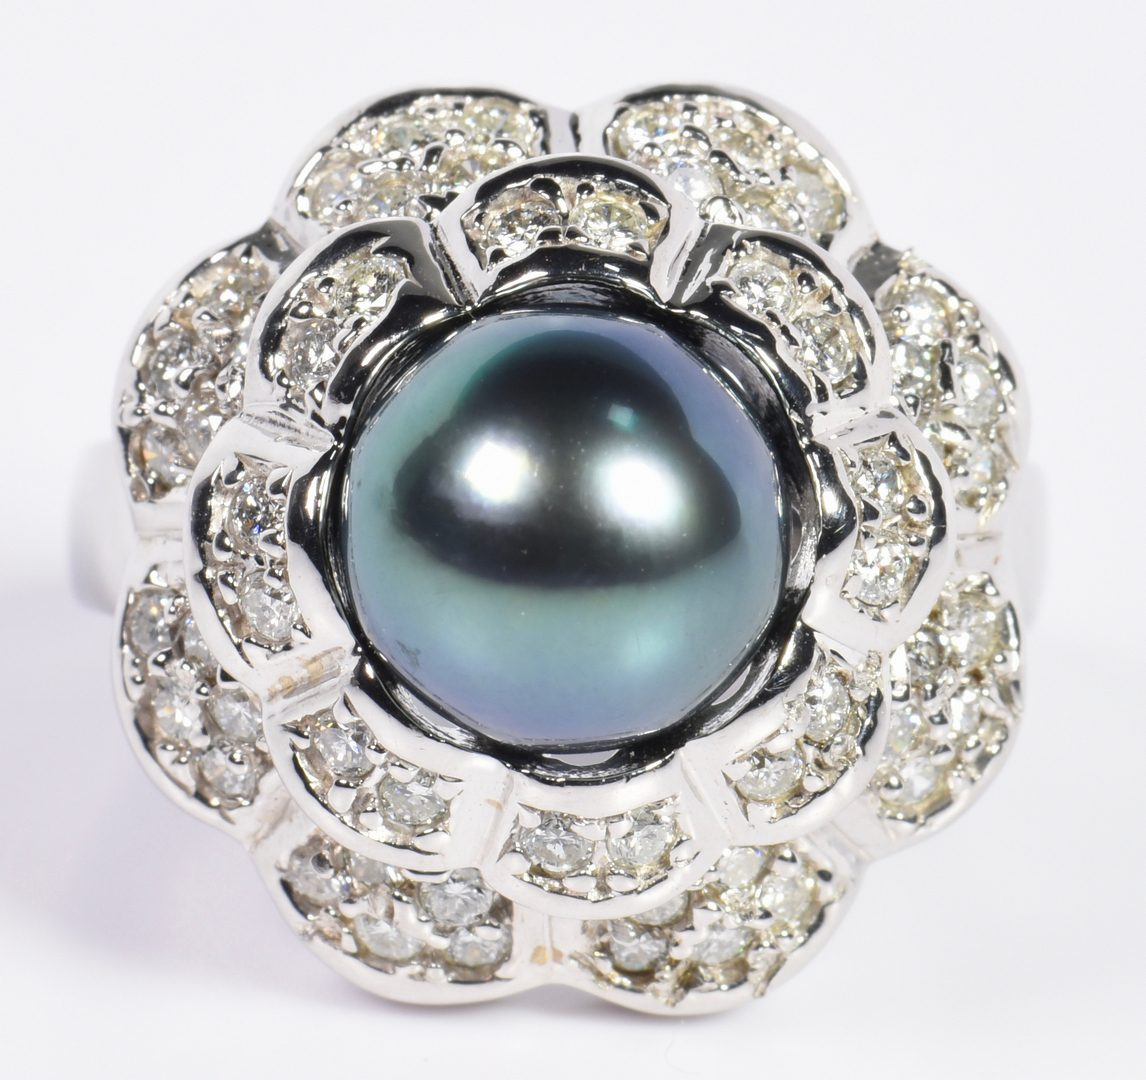 Lot 3: Tahitian Pearl and Diamond Jewelry